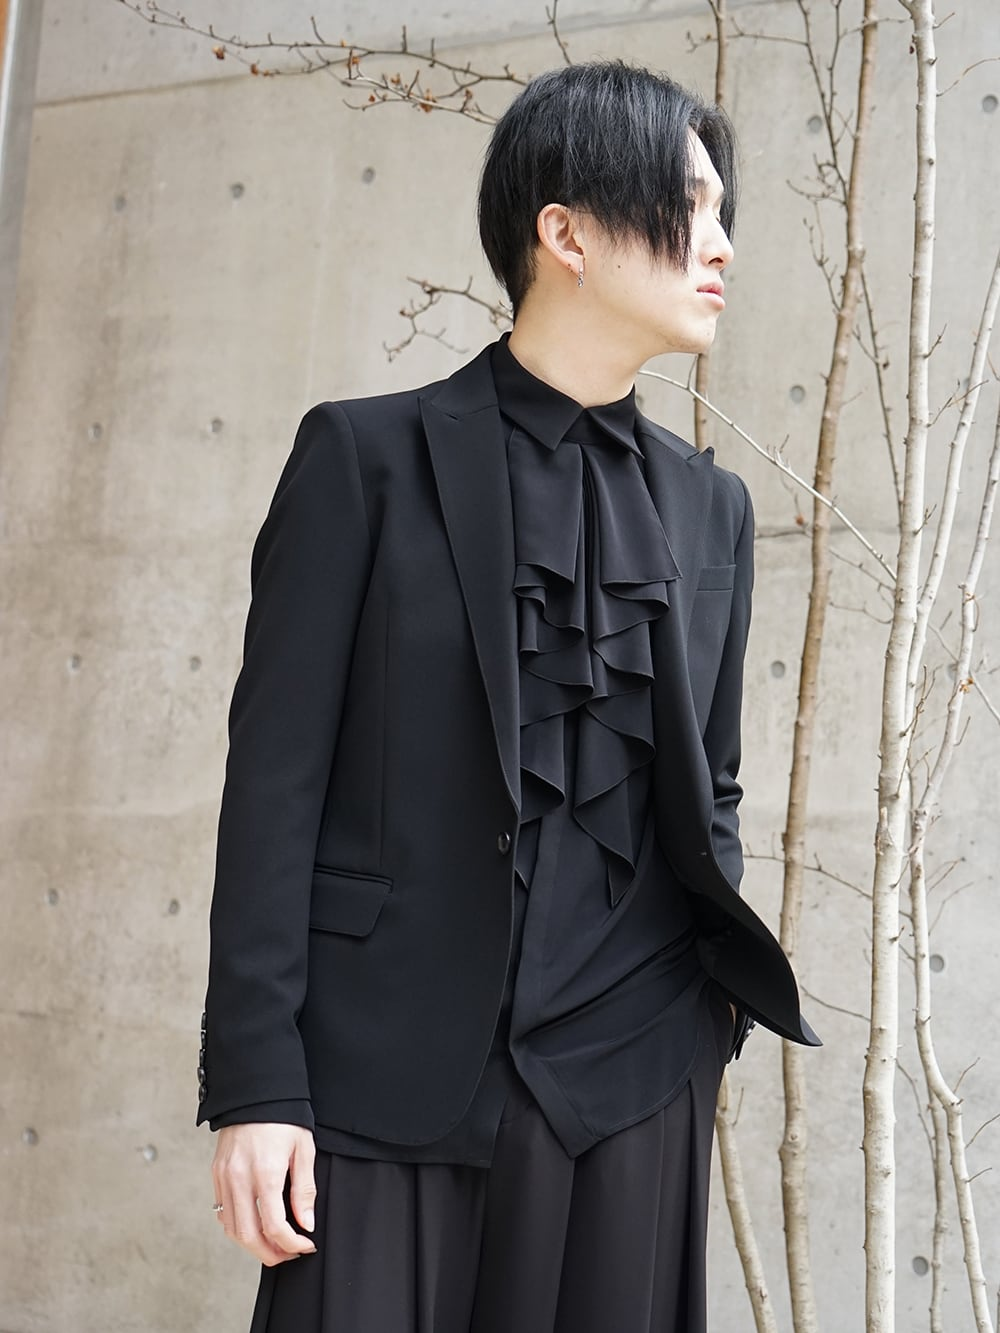 Galaabend 2020SS Black Dress Styling - 2-003